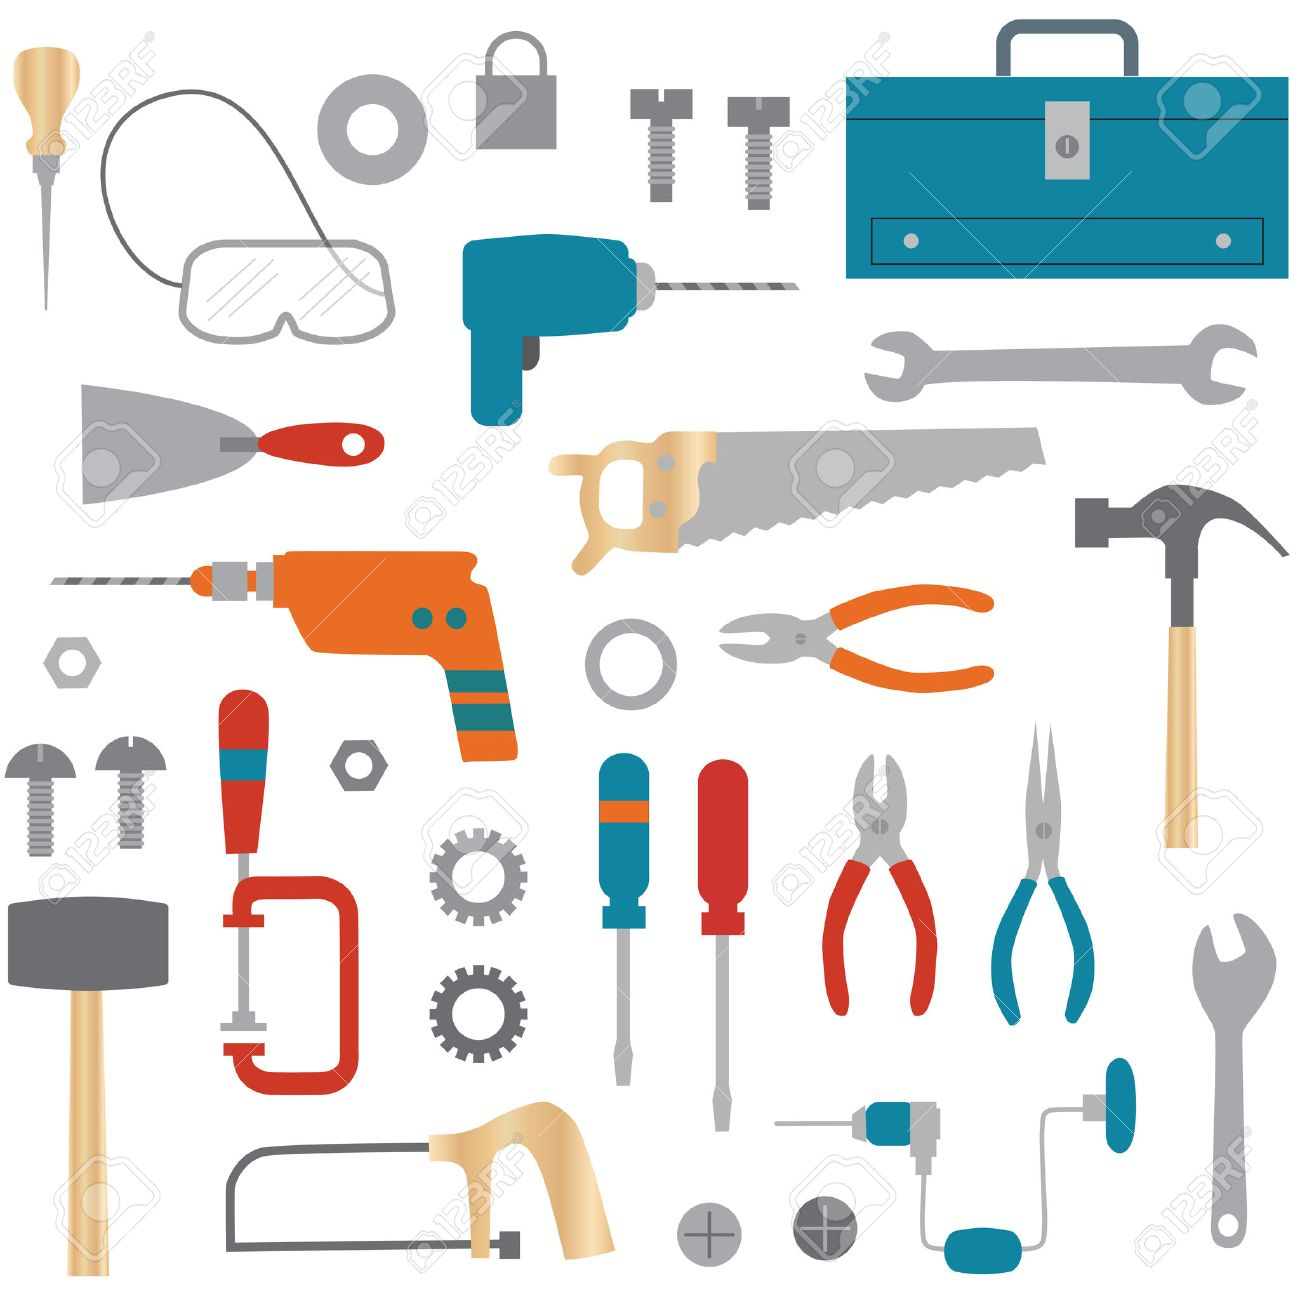 Tools Clipart Royalty Free Cliparts, Vectors, And Stock ...